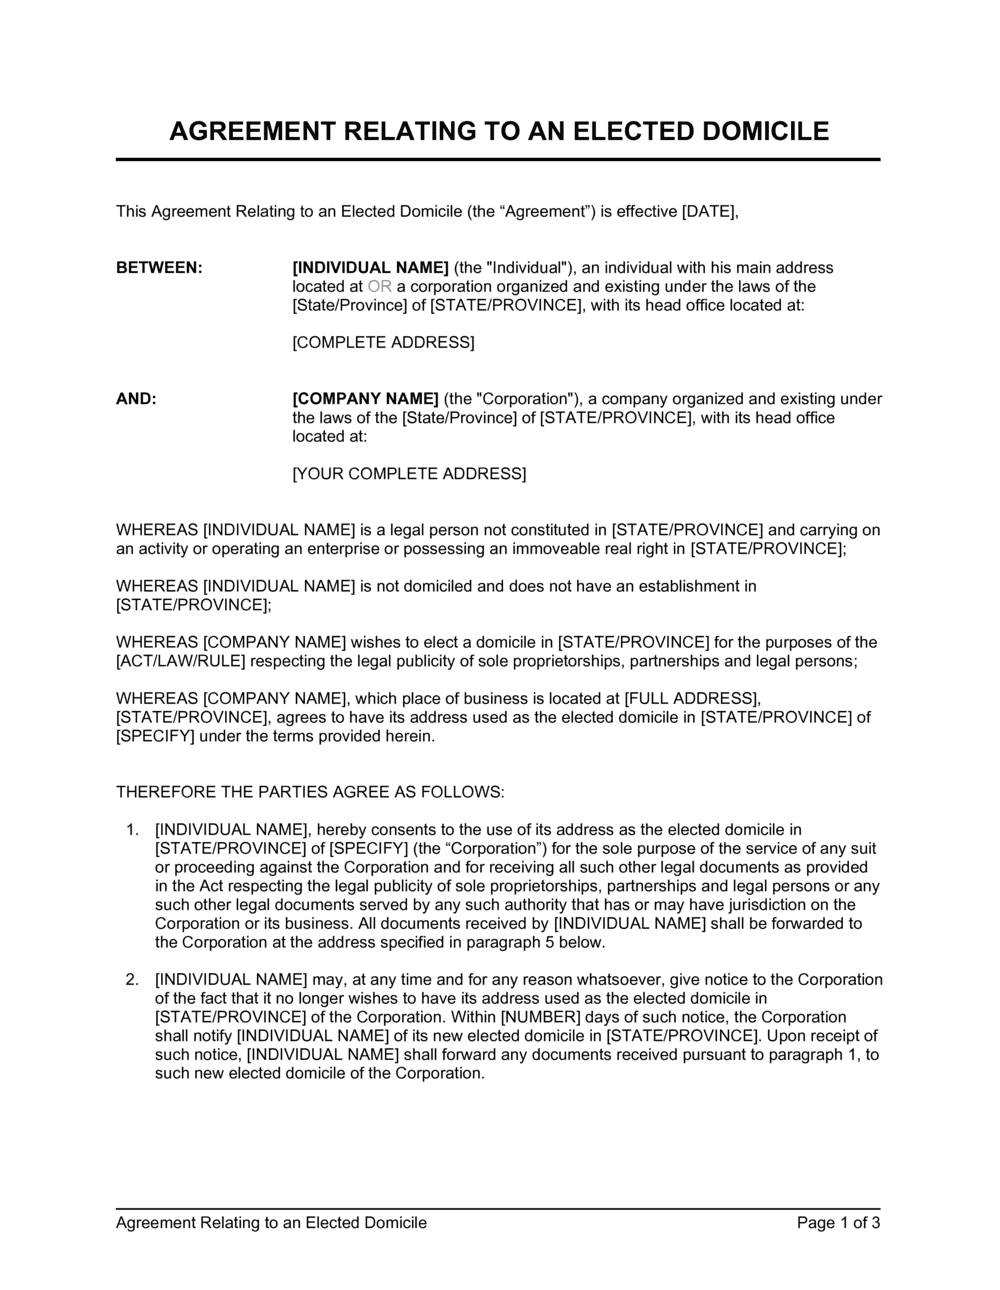 Business-in-a-Box's Agreement Relating to an Elected Domicile Template